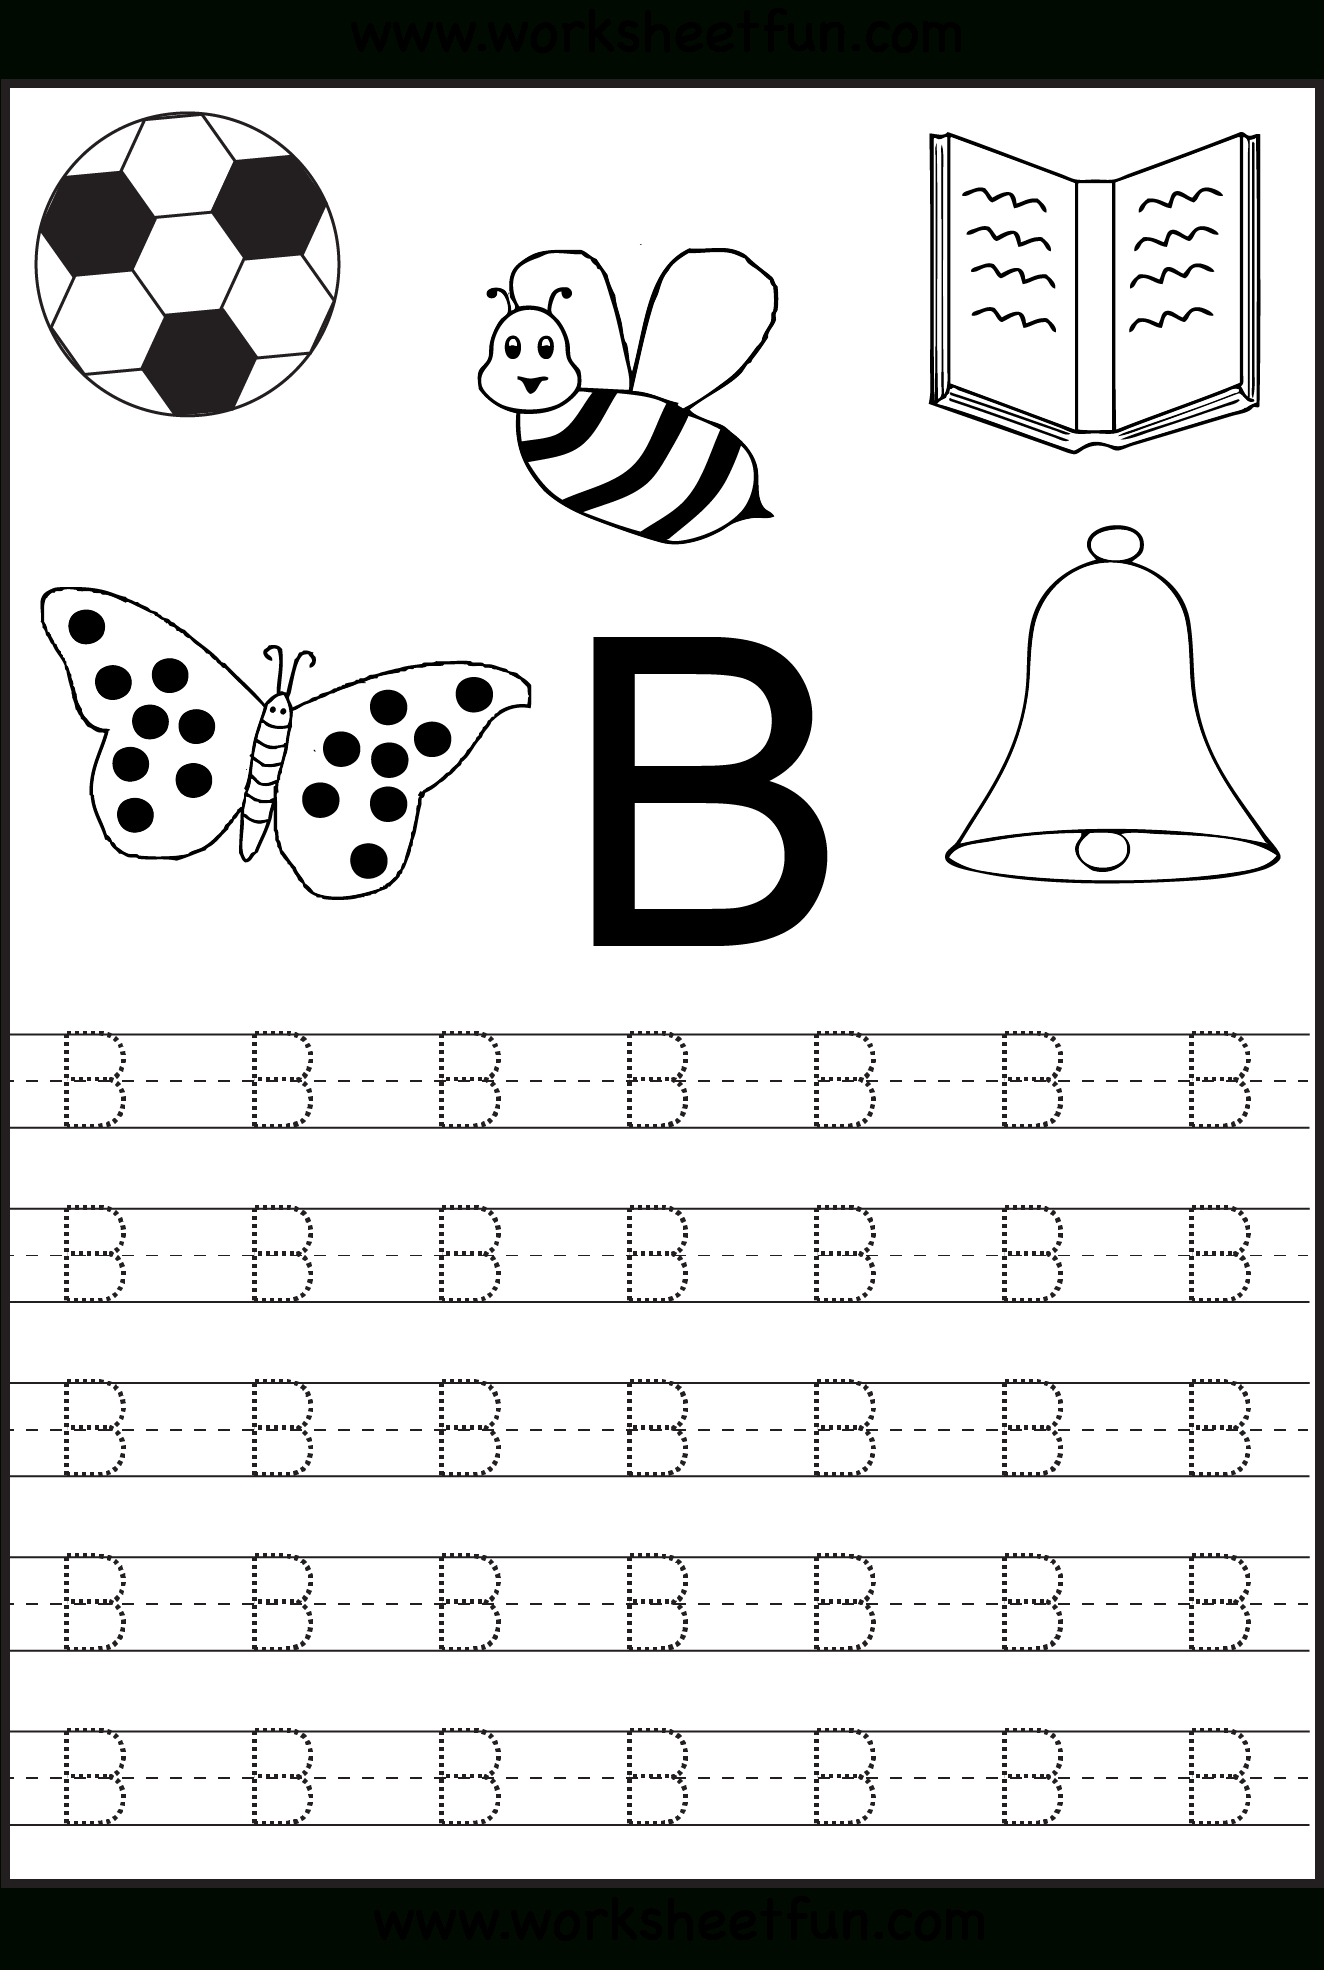 Free Printable Letter Tracing Worksheets For Kindergarten for Tracing Letters For Preschool Printables